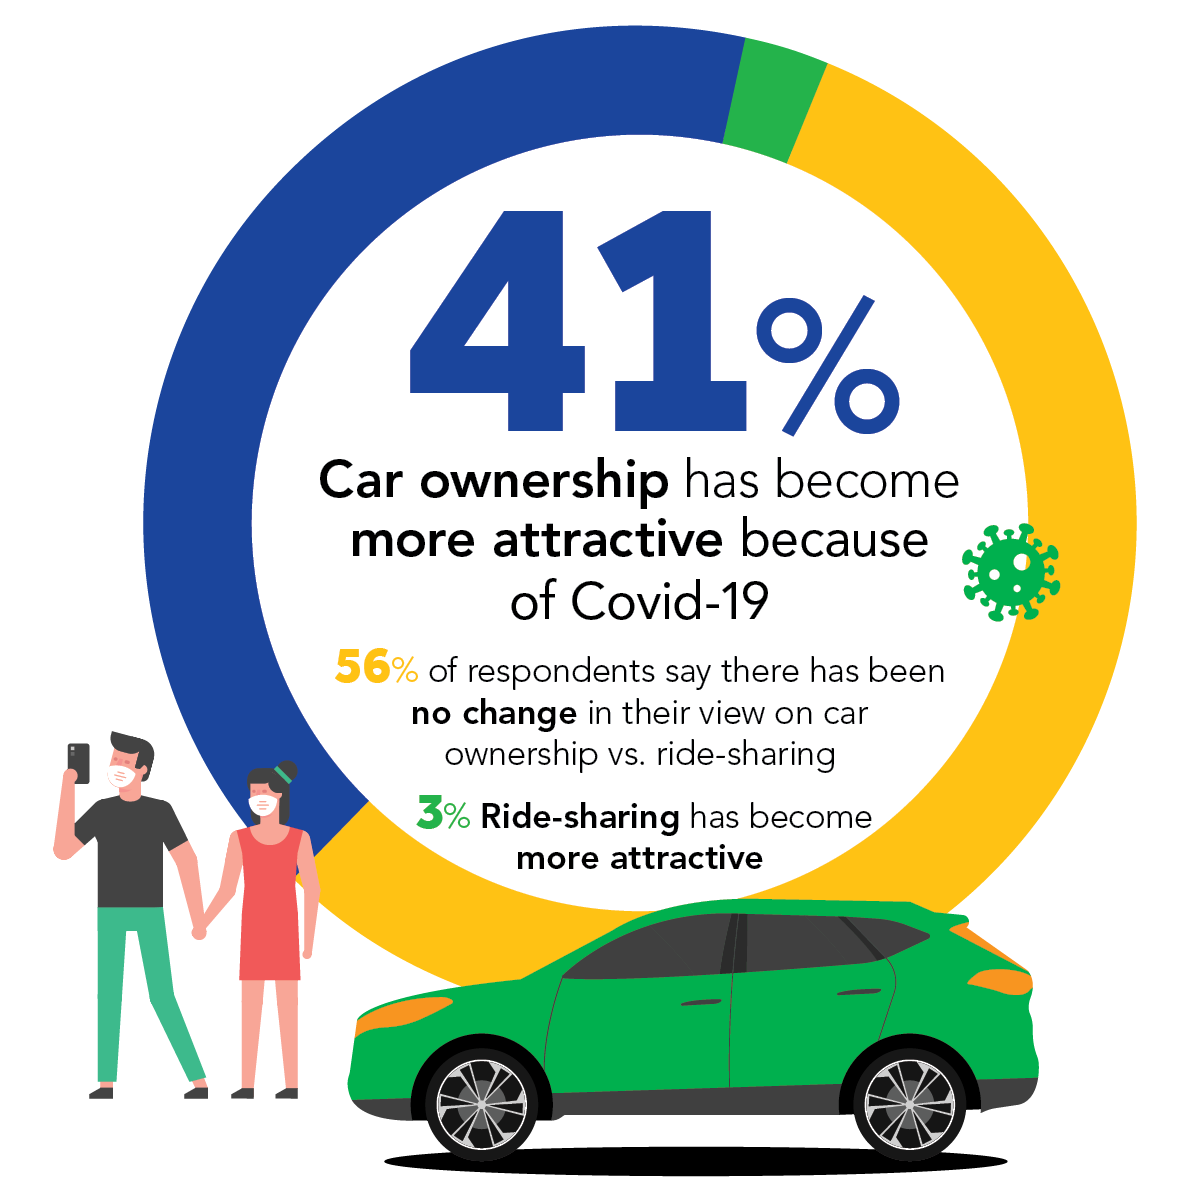 Ride-share vs ownership